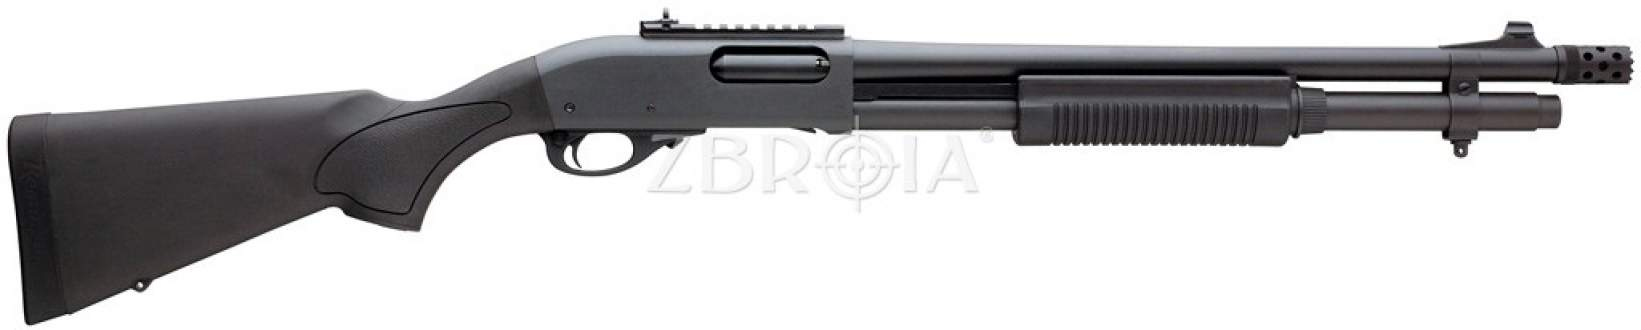 Ружье Remington 870 Express Tactical кал. 12/76 (ствол 46 см.)